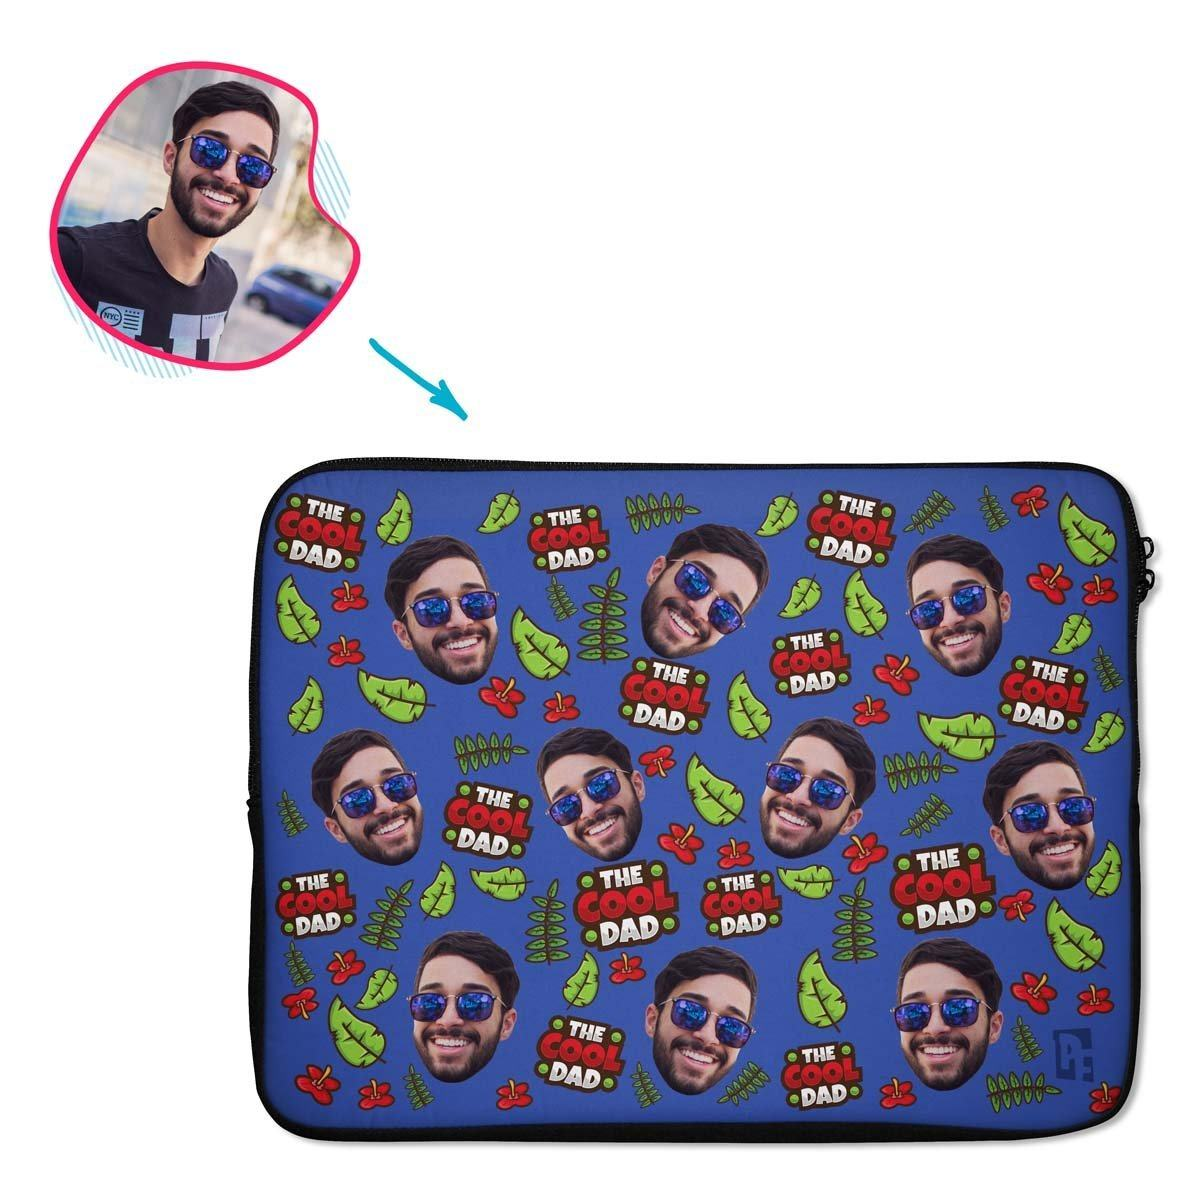 darkblue The Cool Dad laptop sleeve personalized with photo of face printed on them